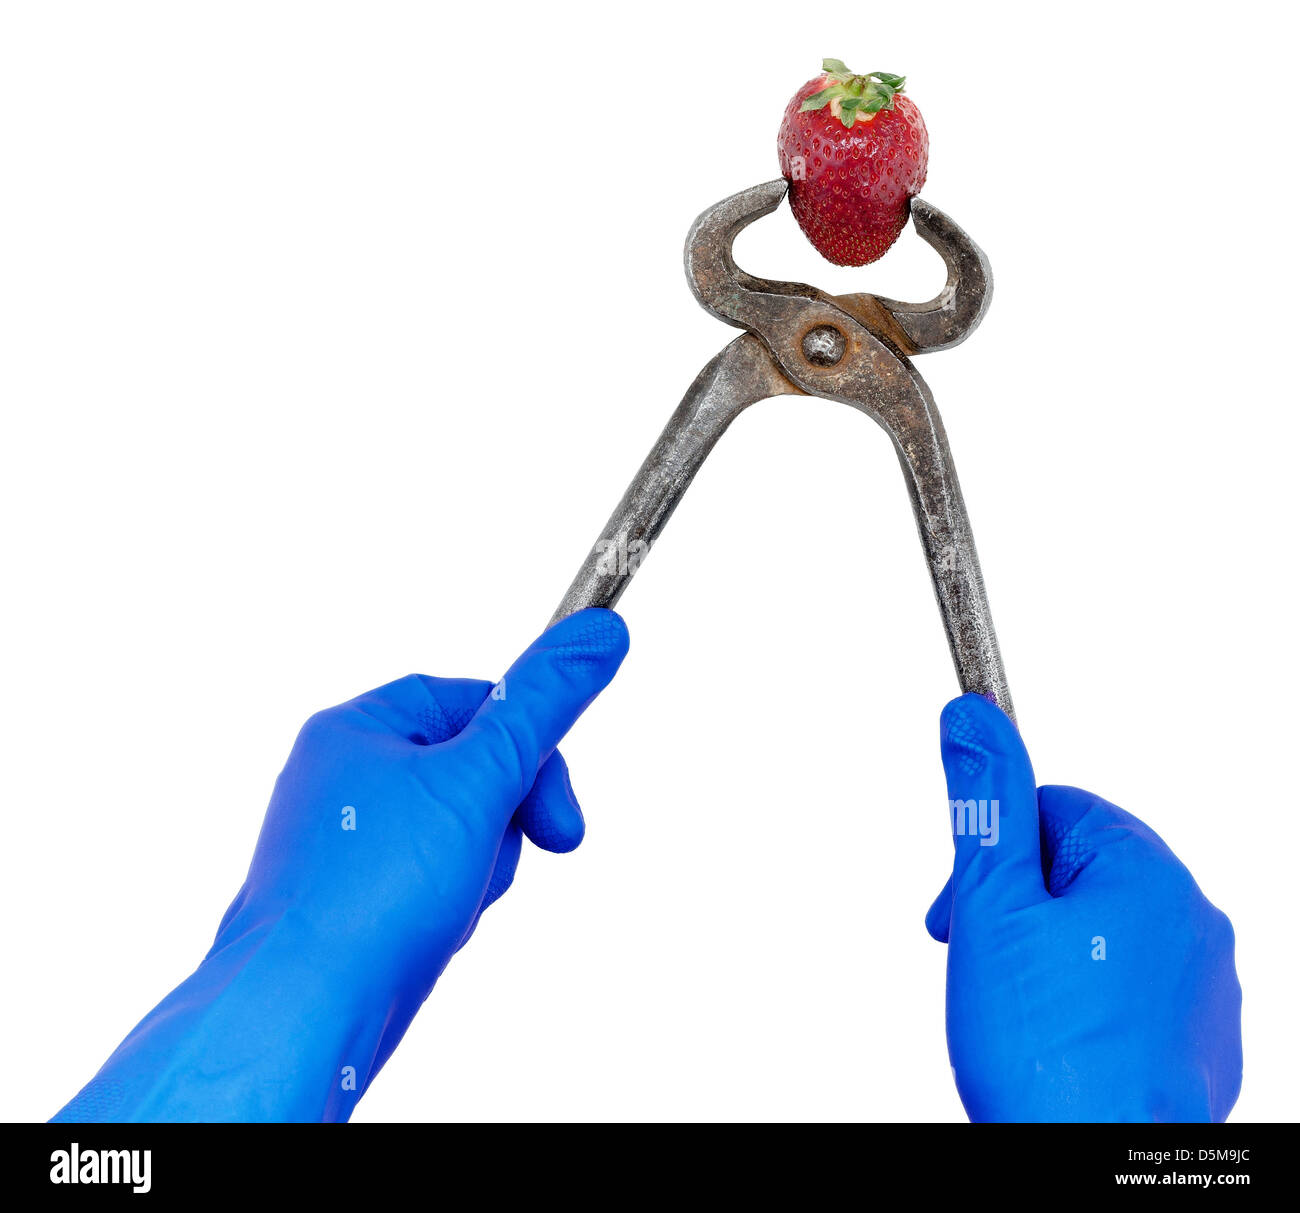 Gloved hands oppress a strawberry with tongs - Stock Image